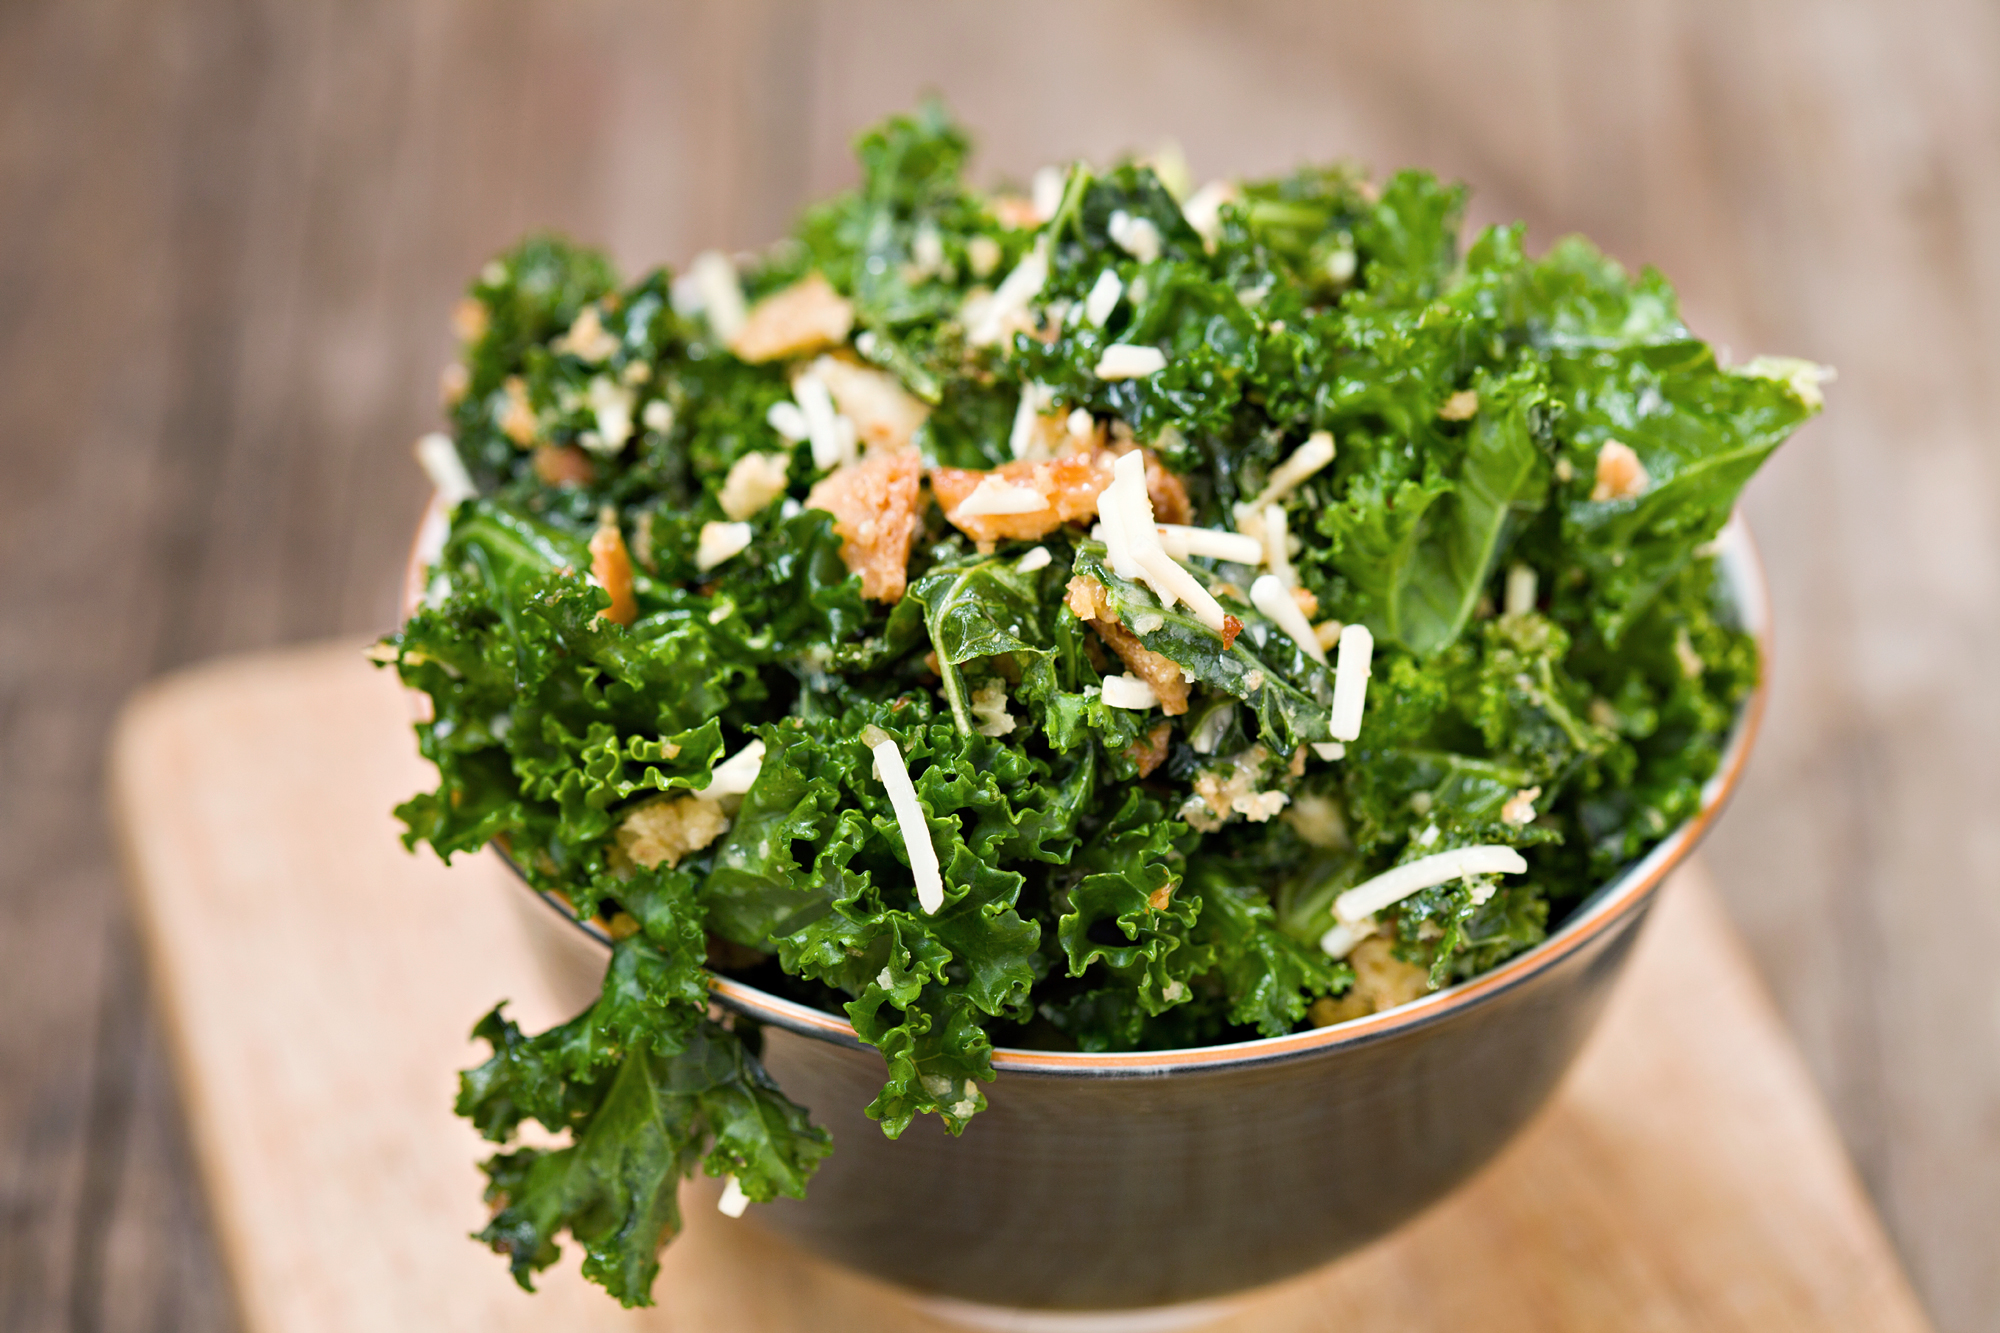 Whip Up Jennifer Lopez's Favorite Kale Salad